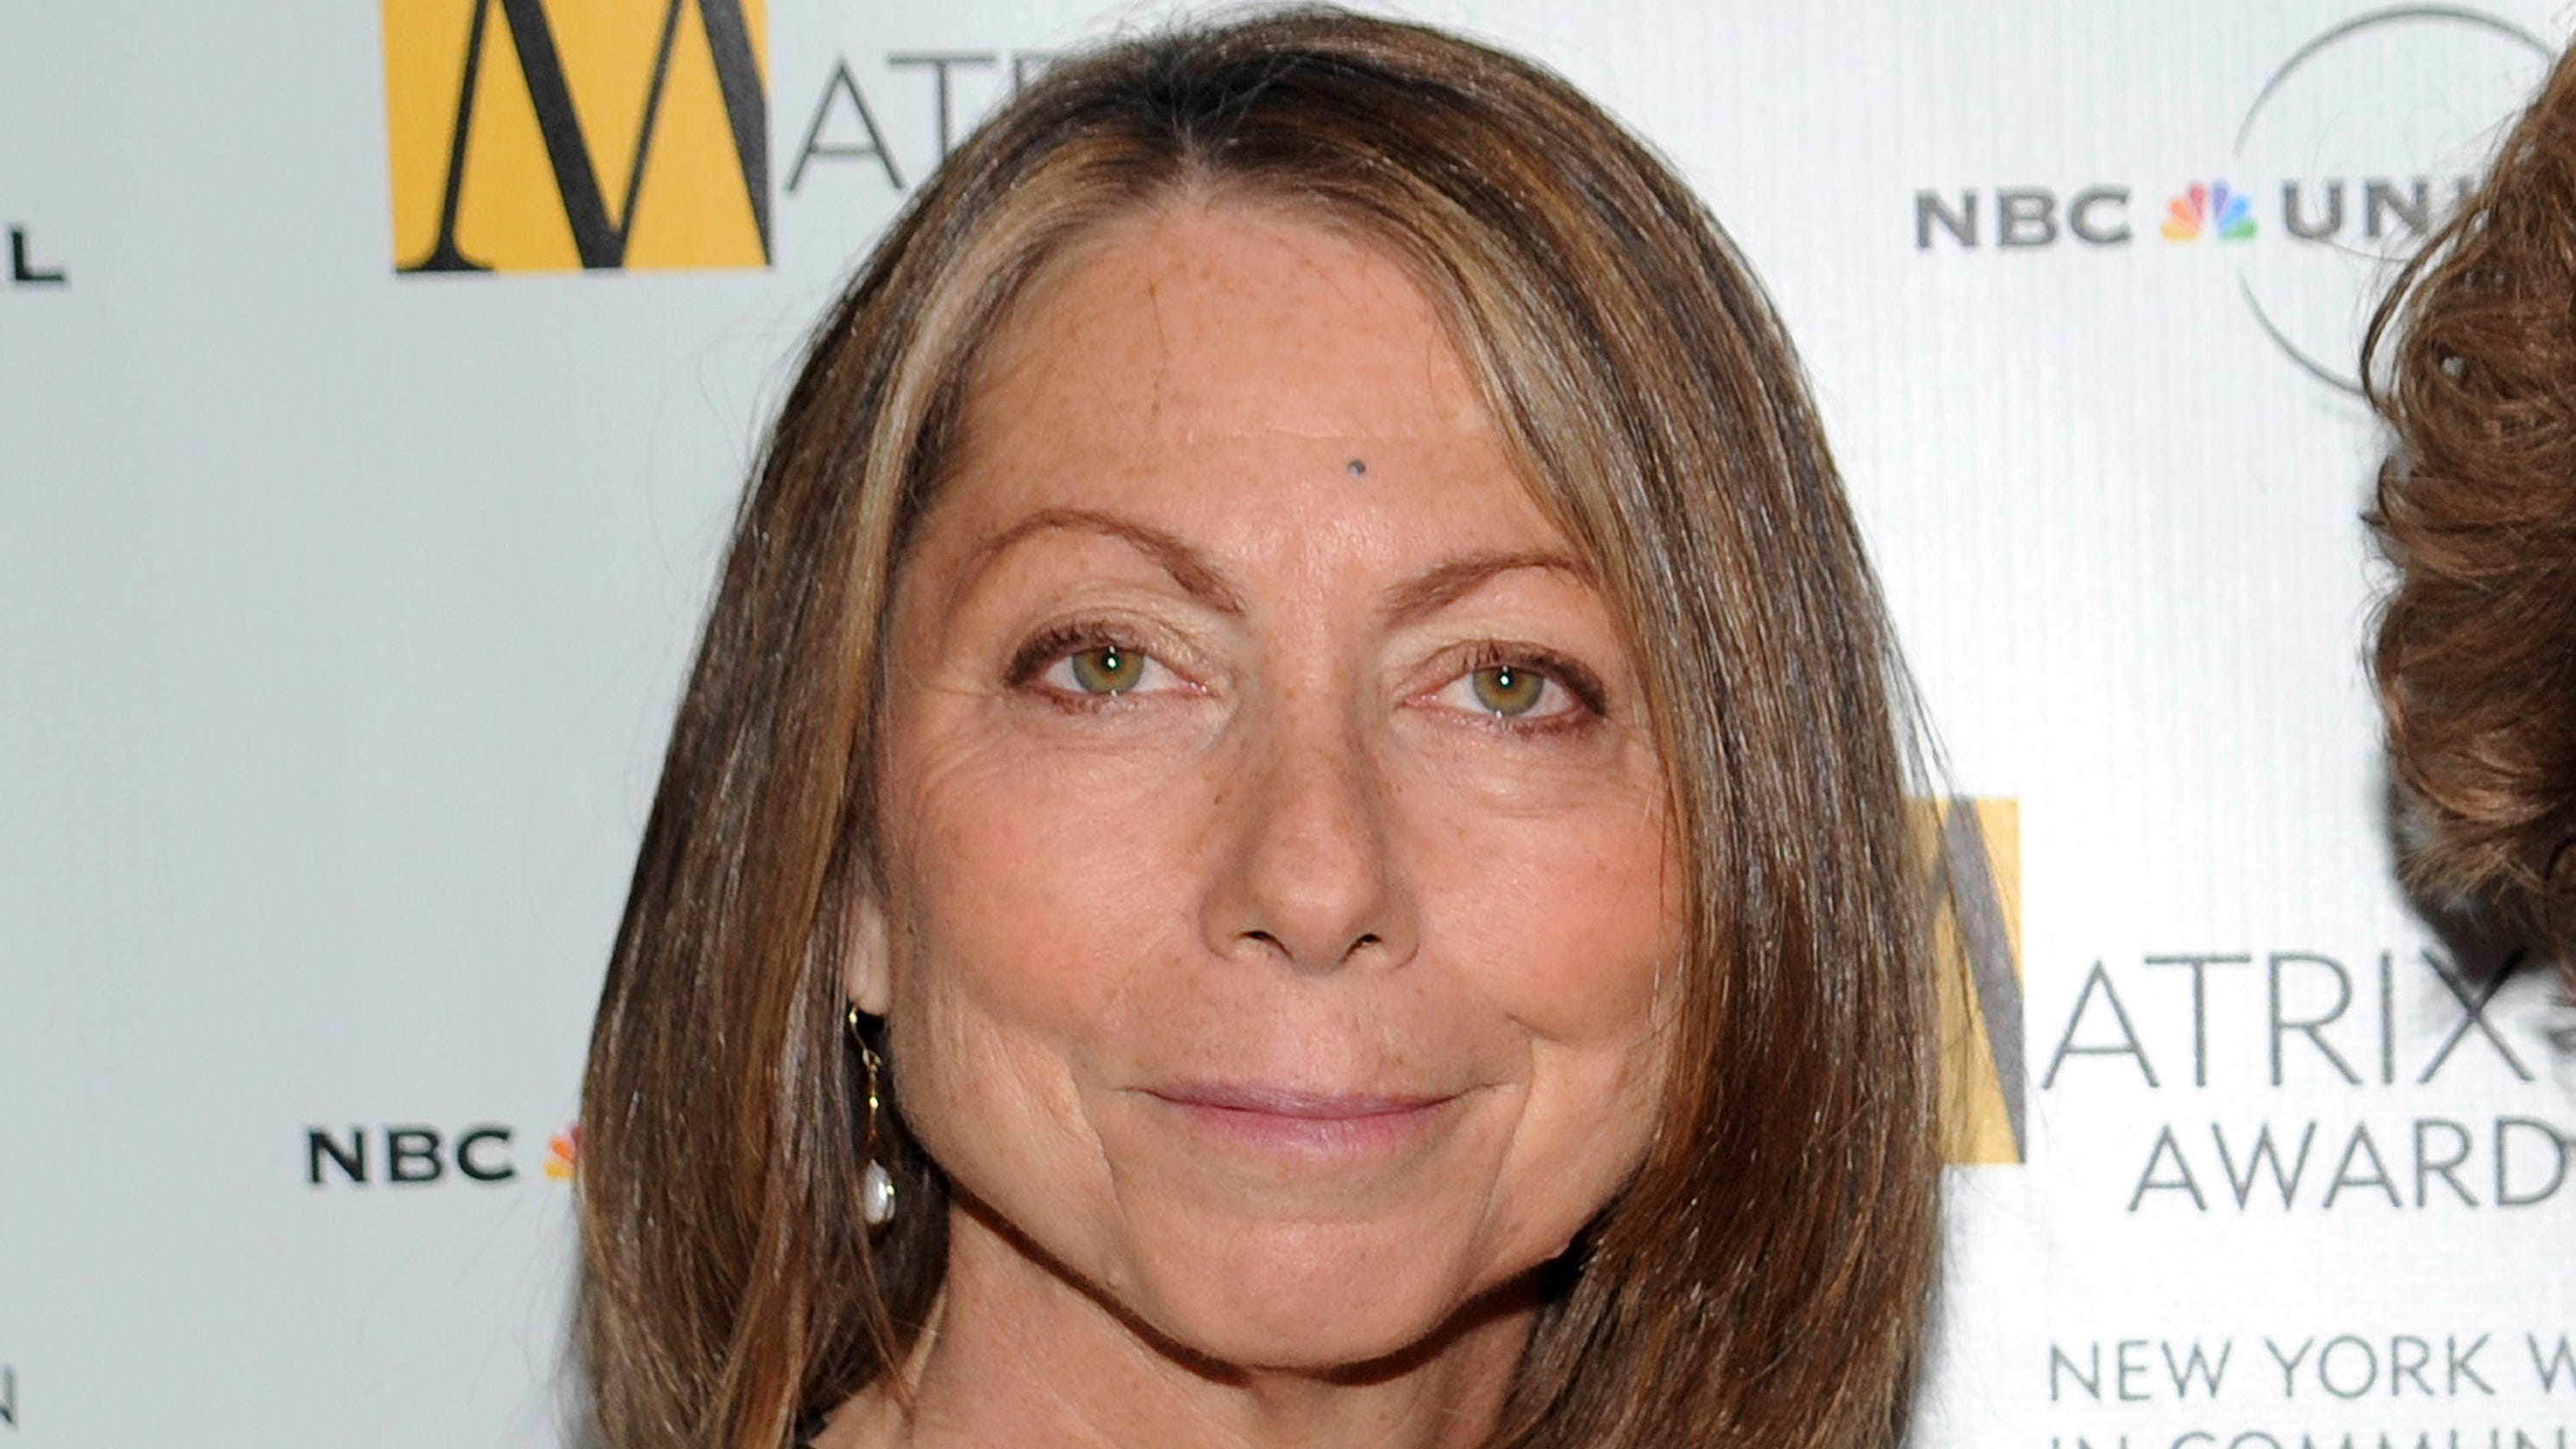 Jill Abramson's 'Merchants of Truth': A grim eye on the state of the news business